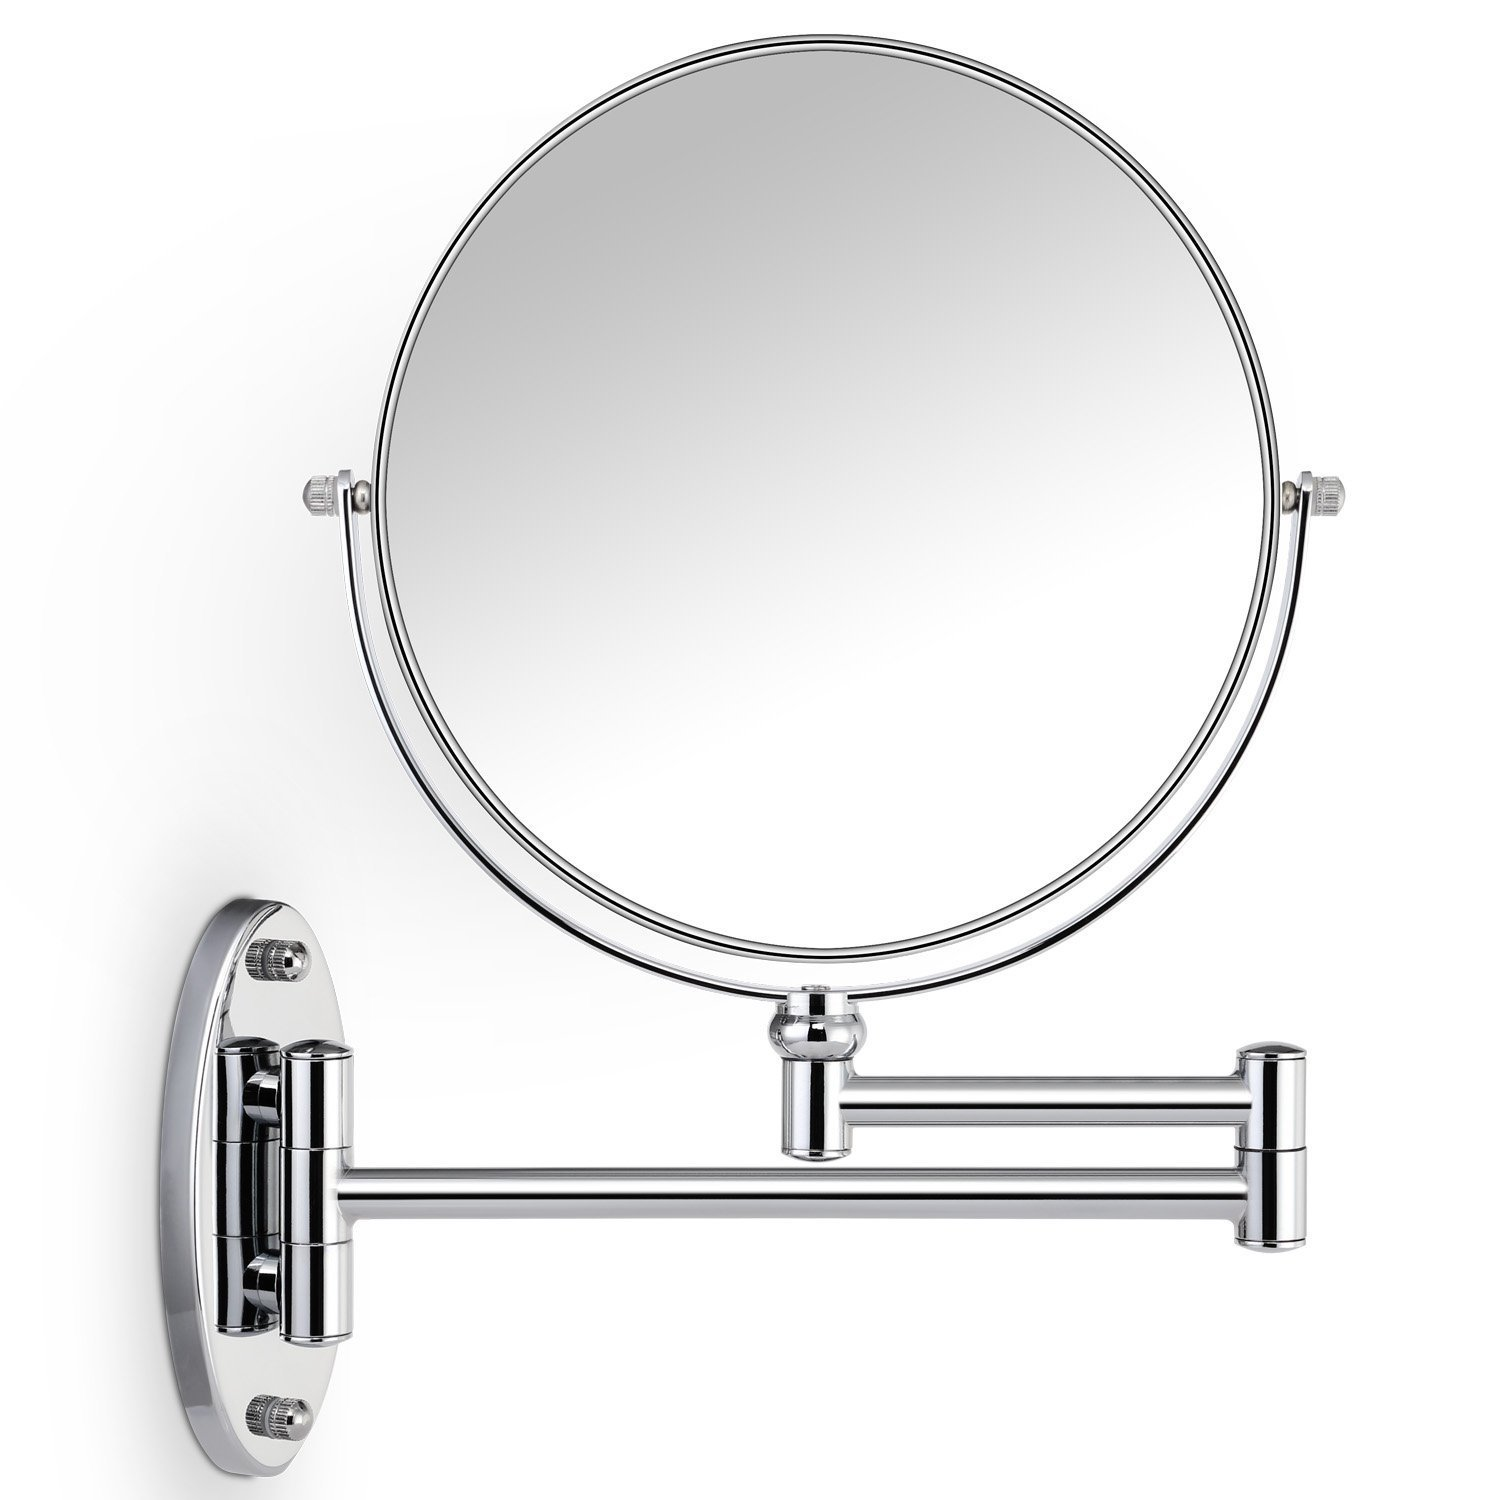 Cheap Wall Mounted 10x Magnifying Mirror, find Wall Mounted 10x ...